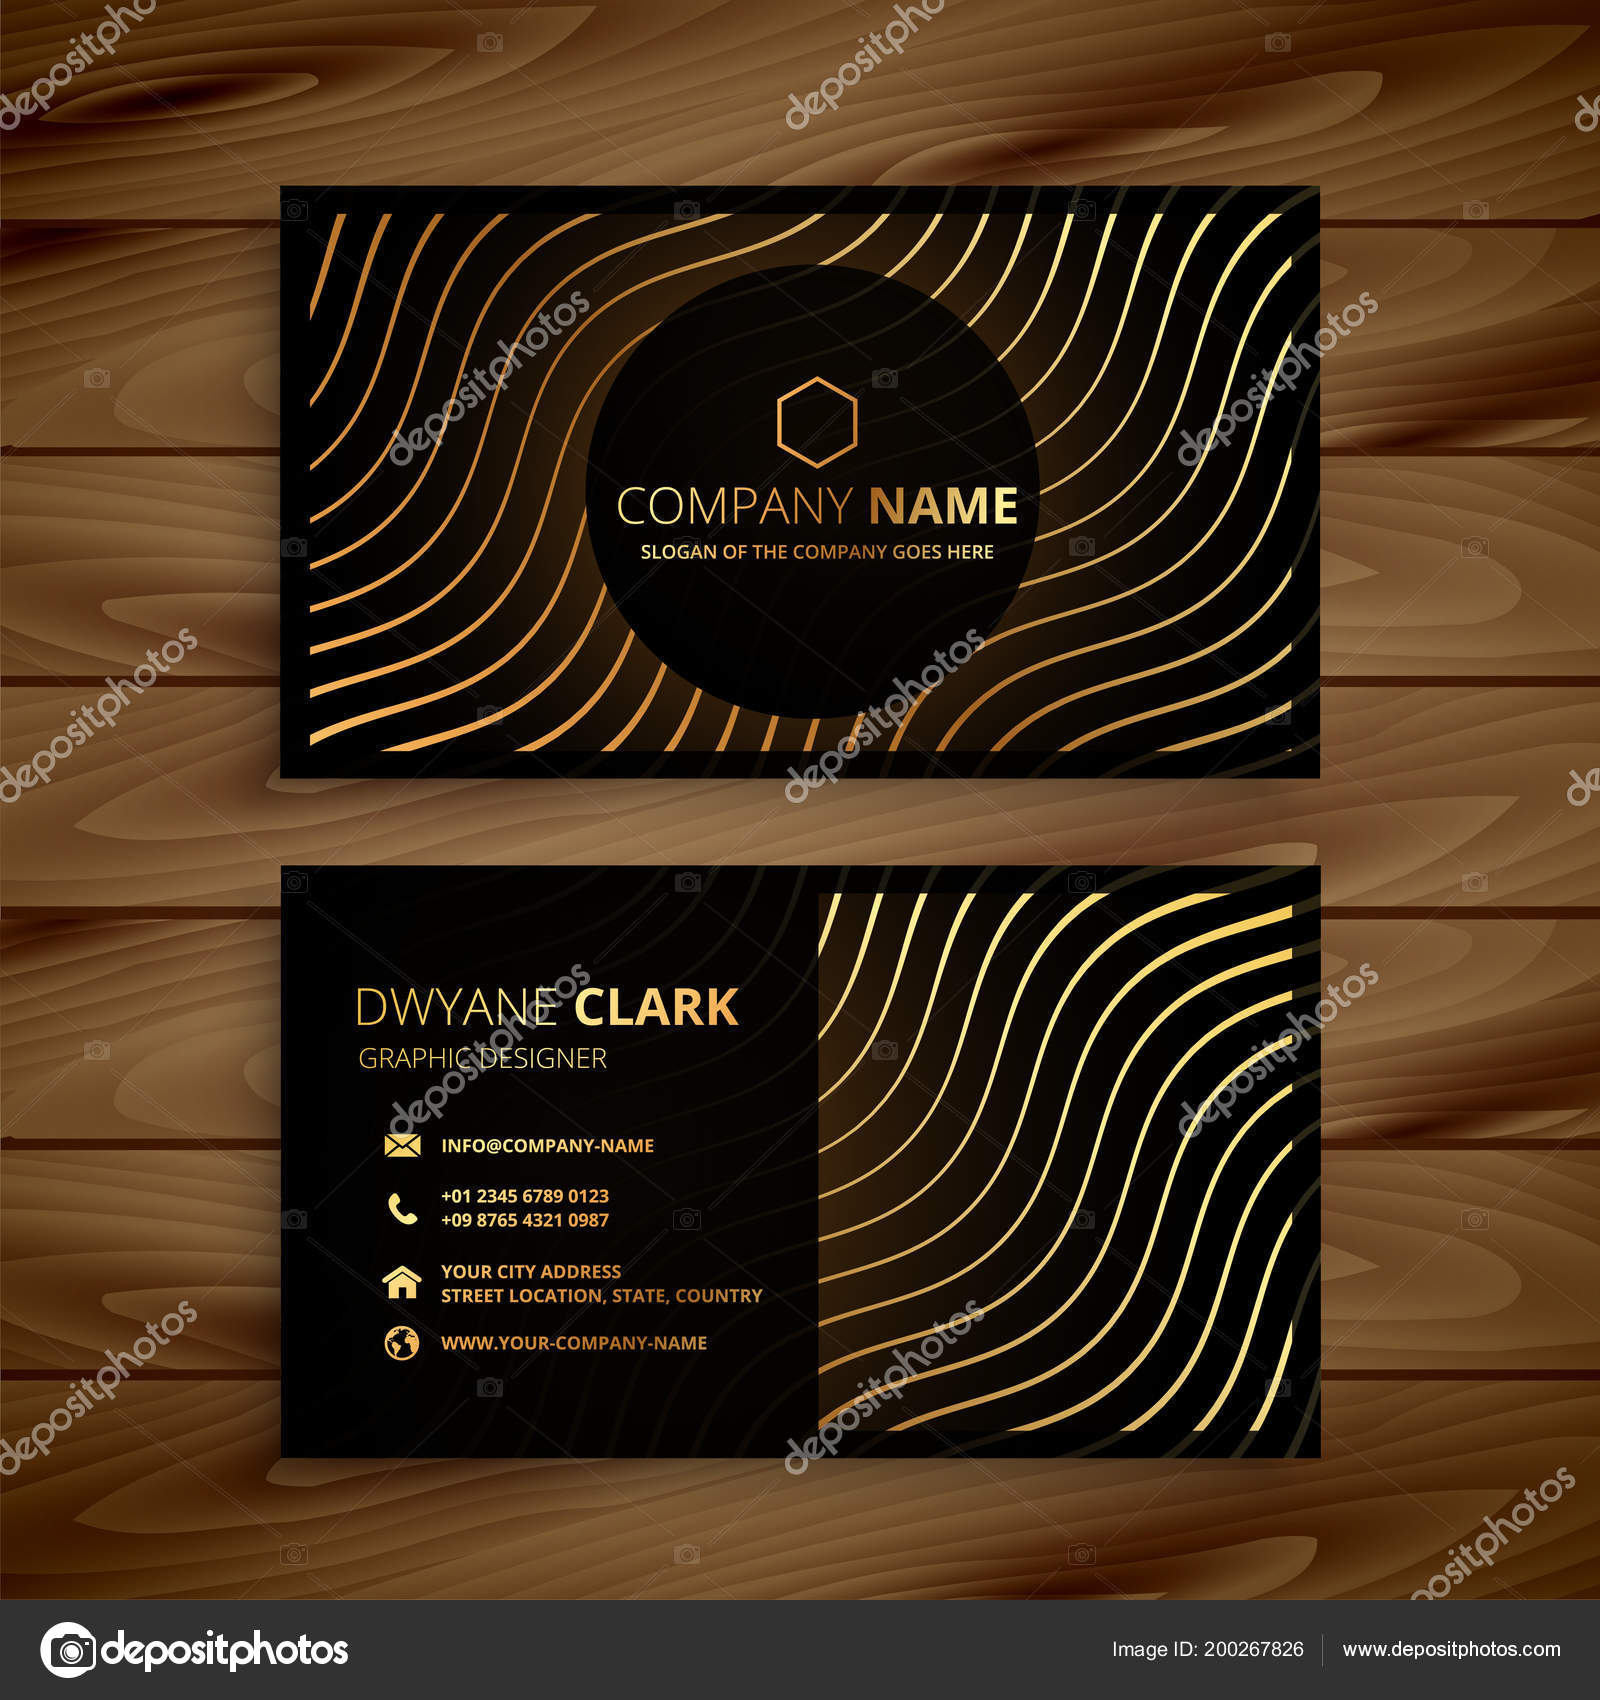 Golden premium business card template stock vector starline golden premium business card template stock vector cheaphphosting Choice Image